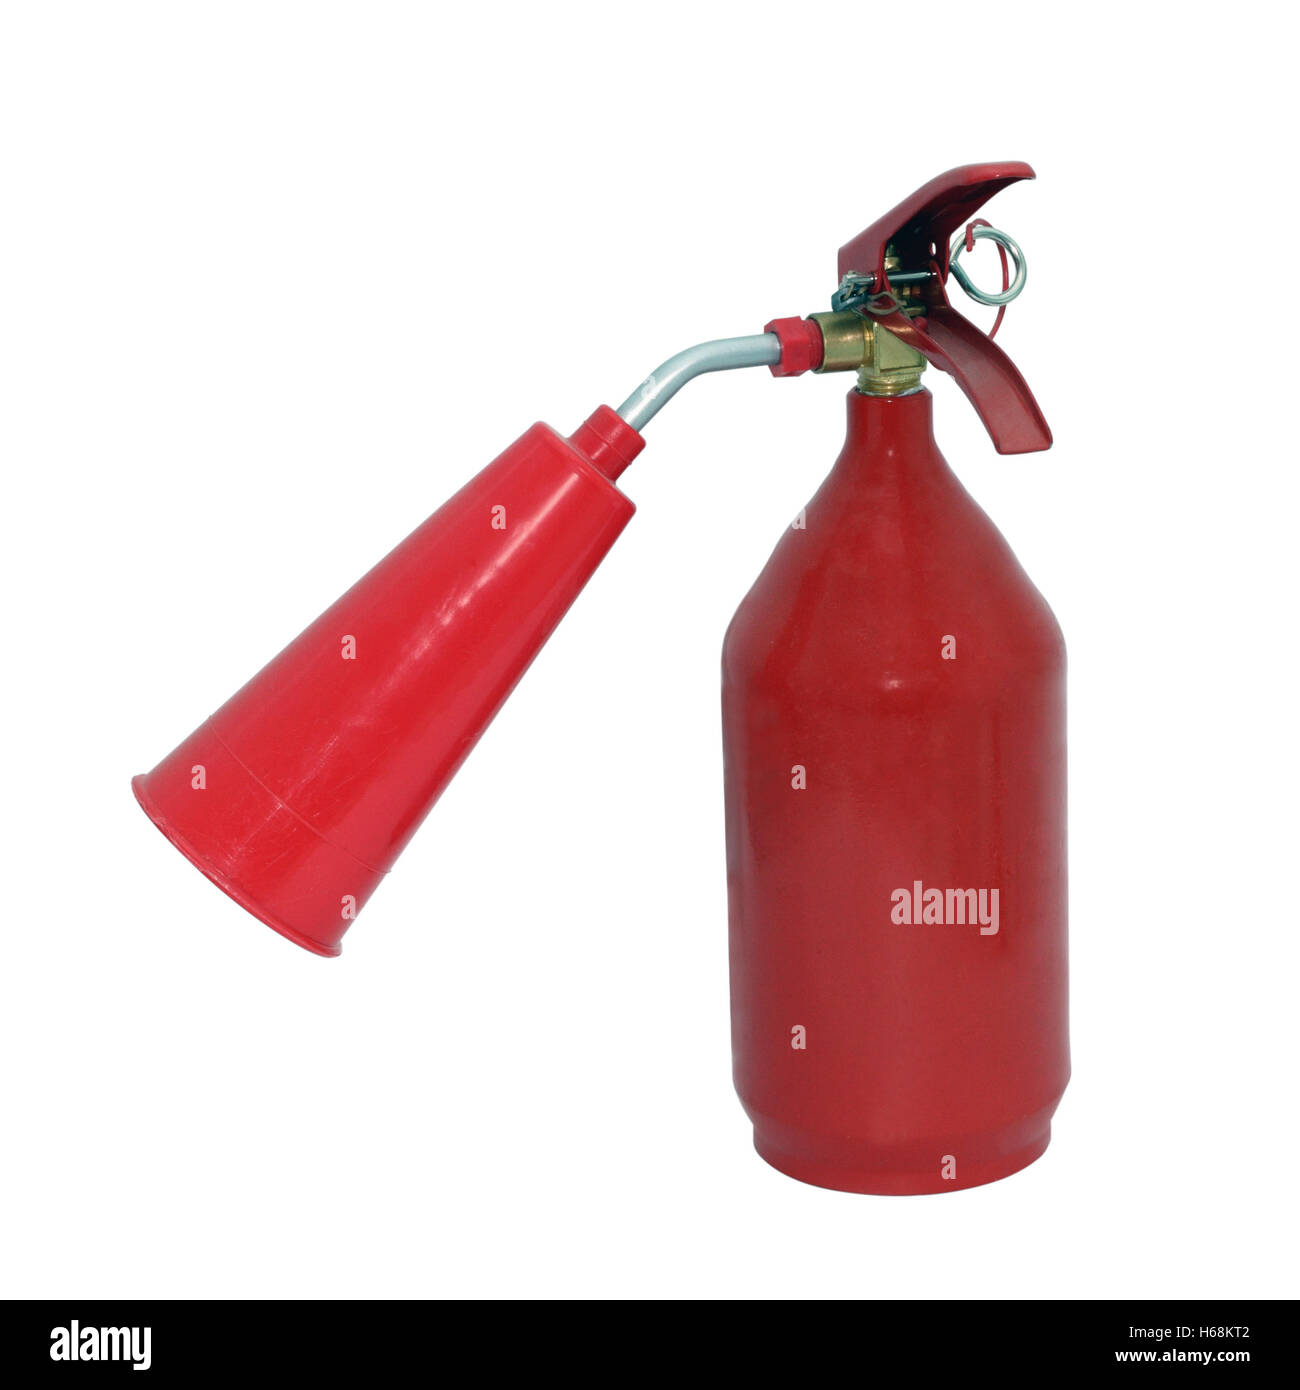 The red fire extinguisher separately on a white background - Stock Image